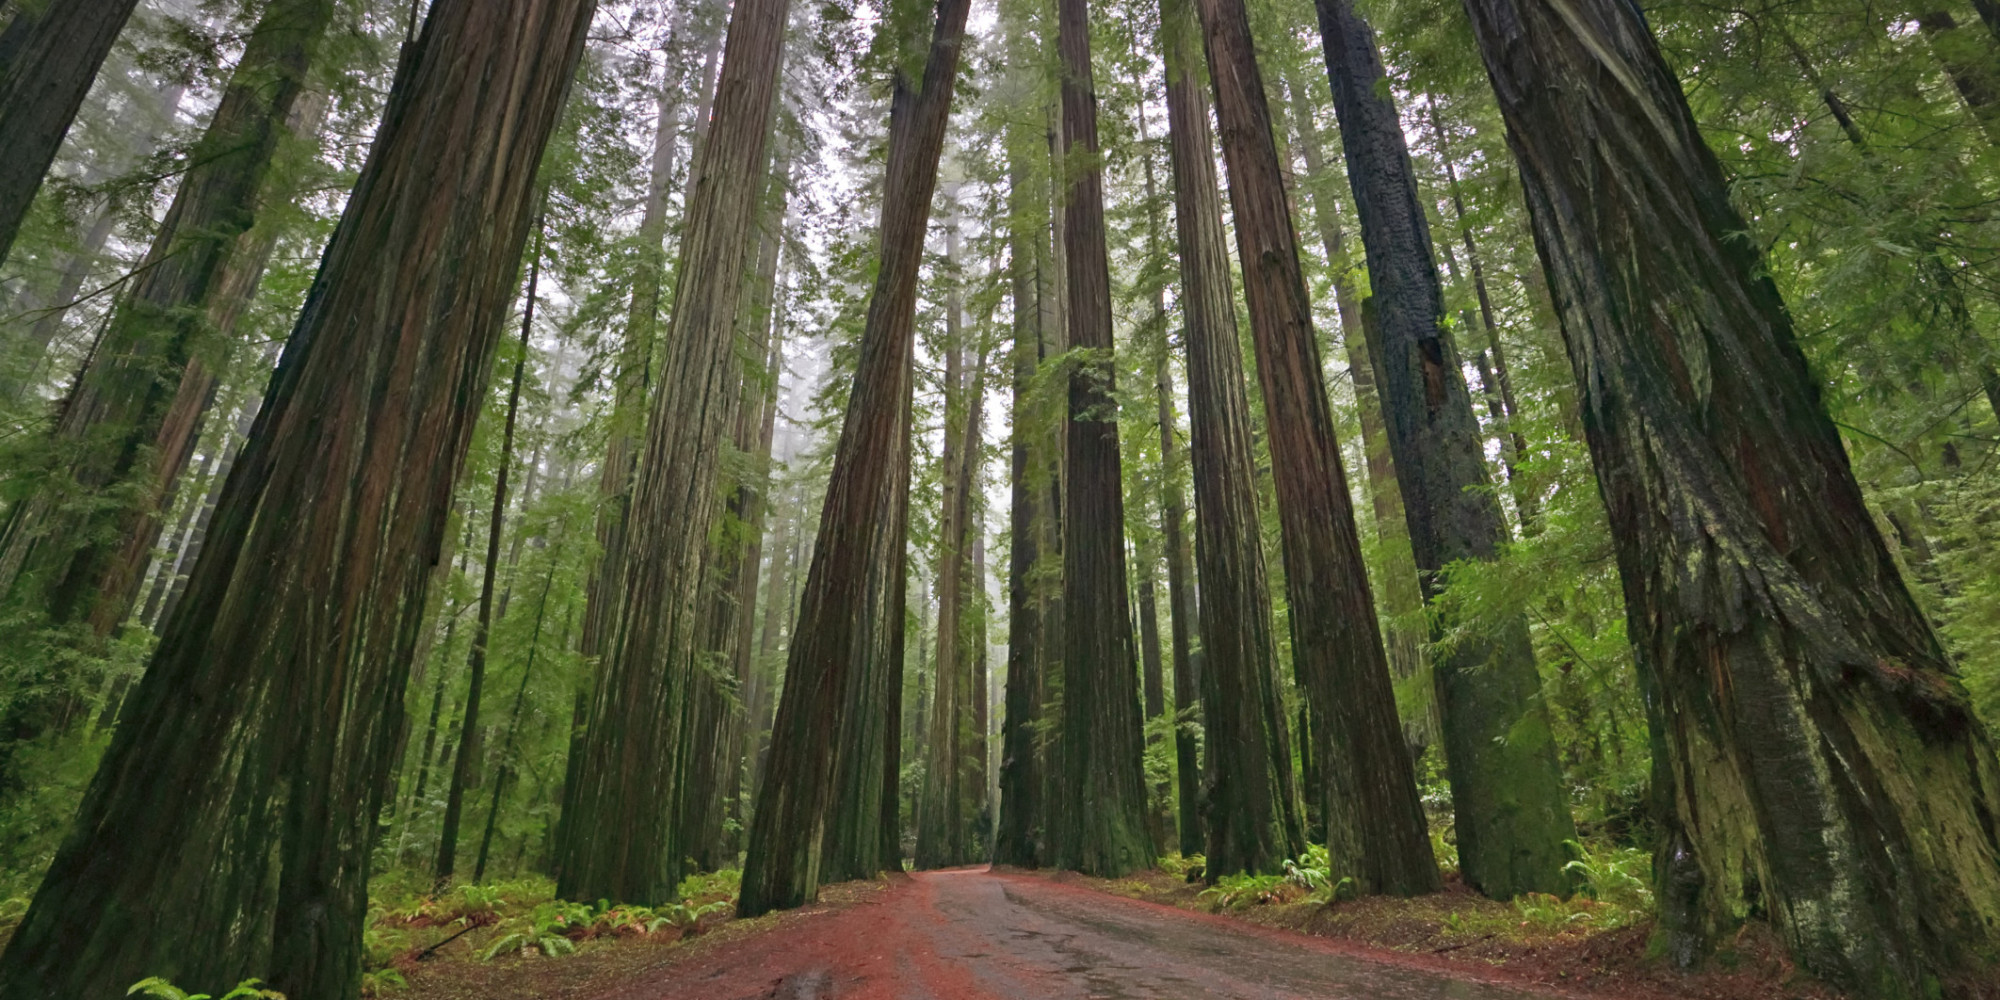 5 Amazing Hd Wallpapers Of Redwood Forests To Calm Your